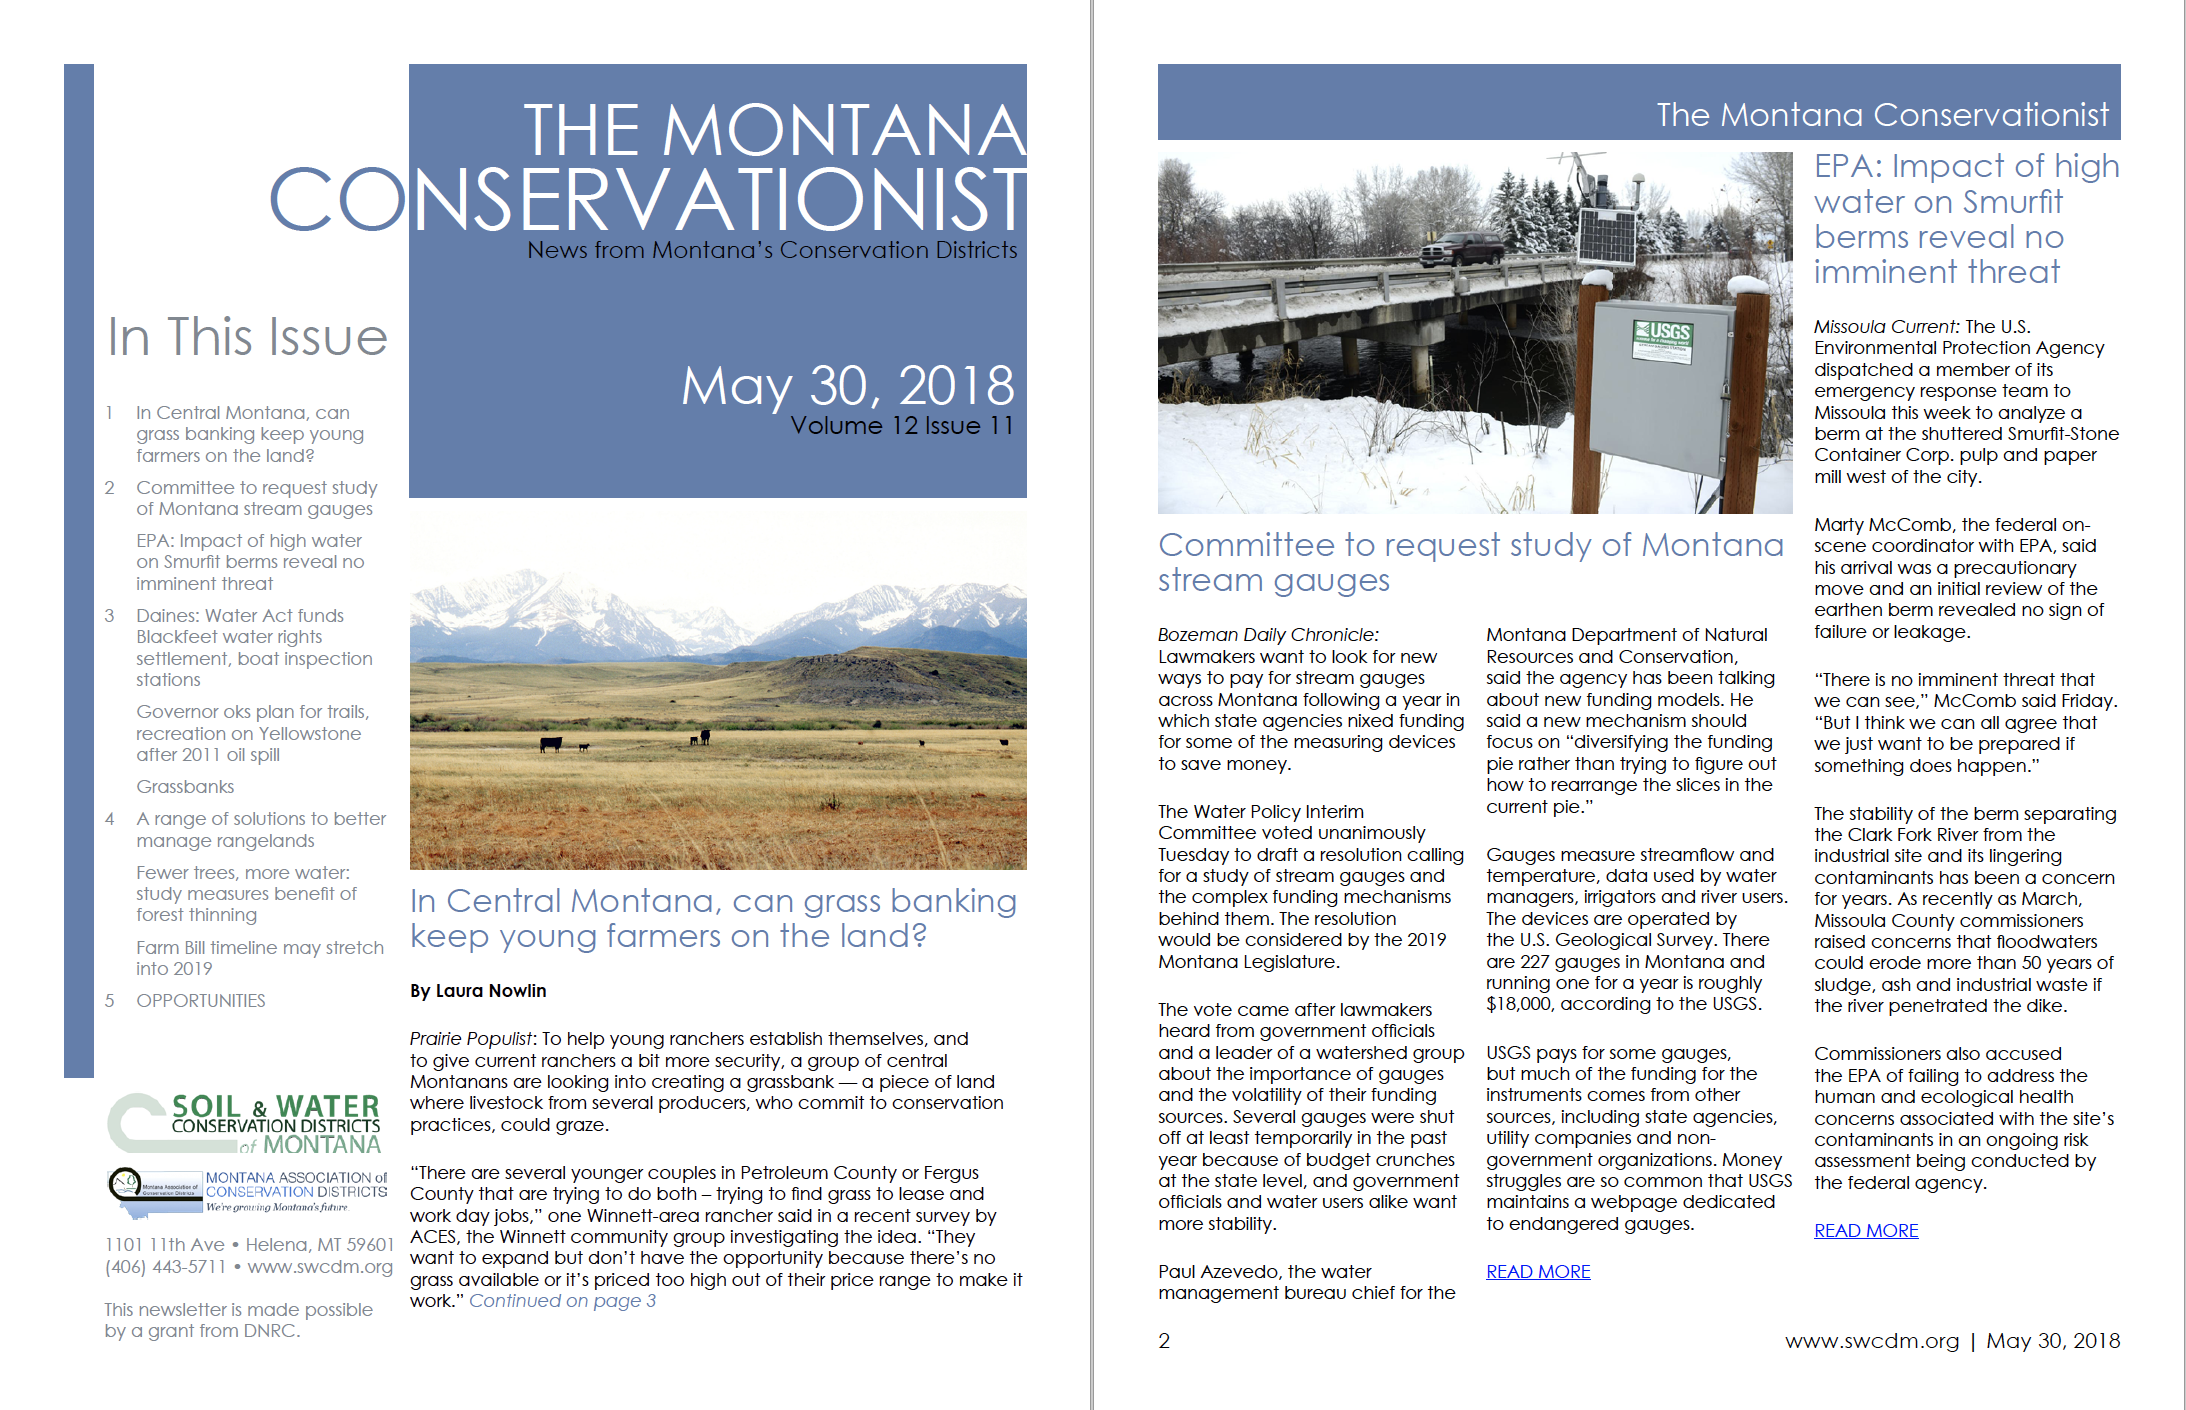 The Montana Conservationist, May 30